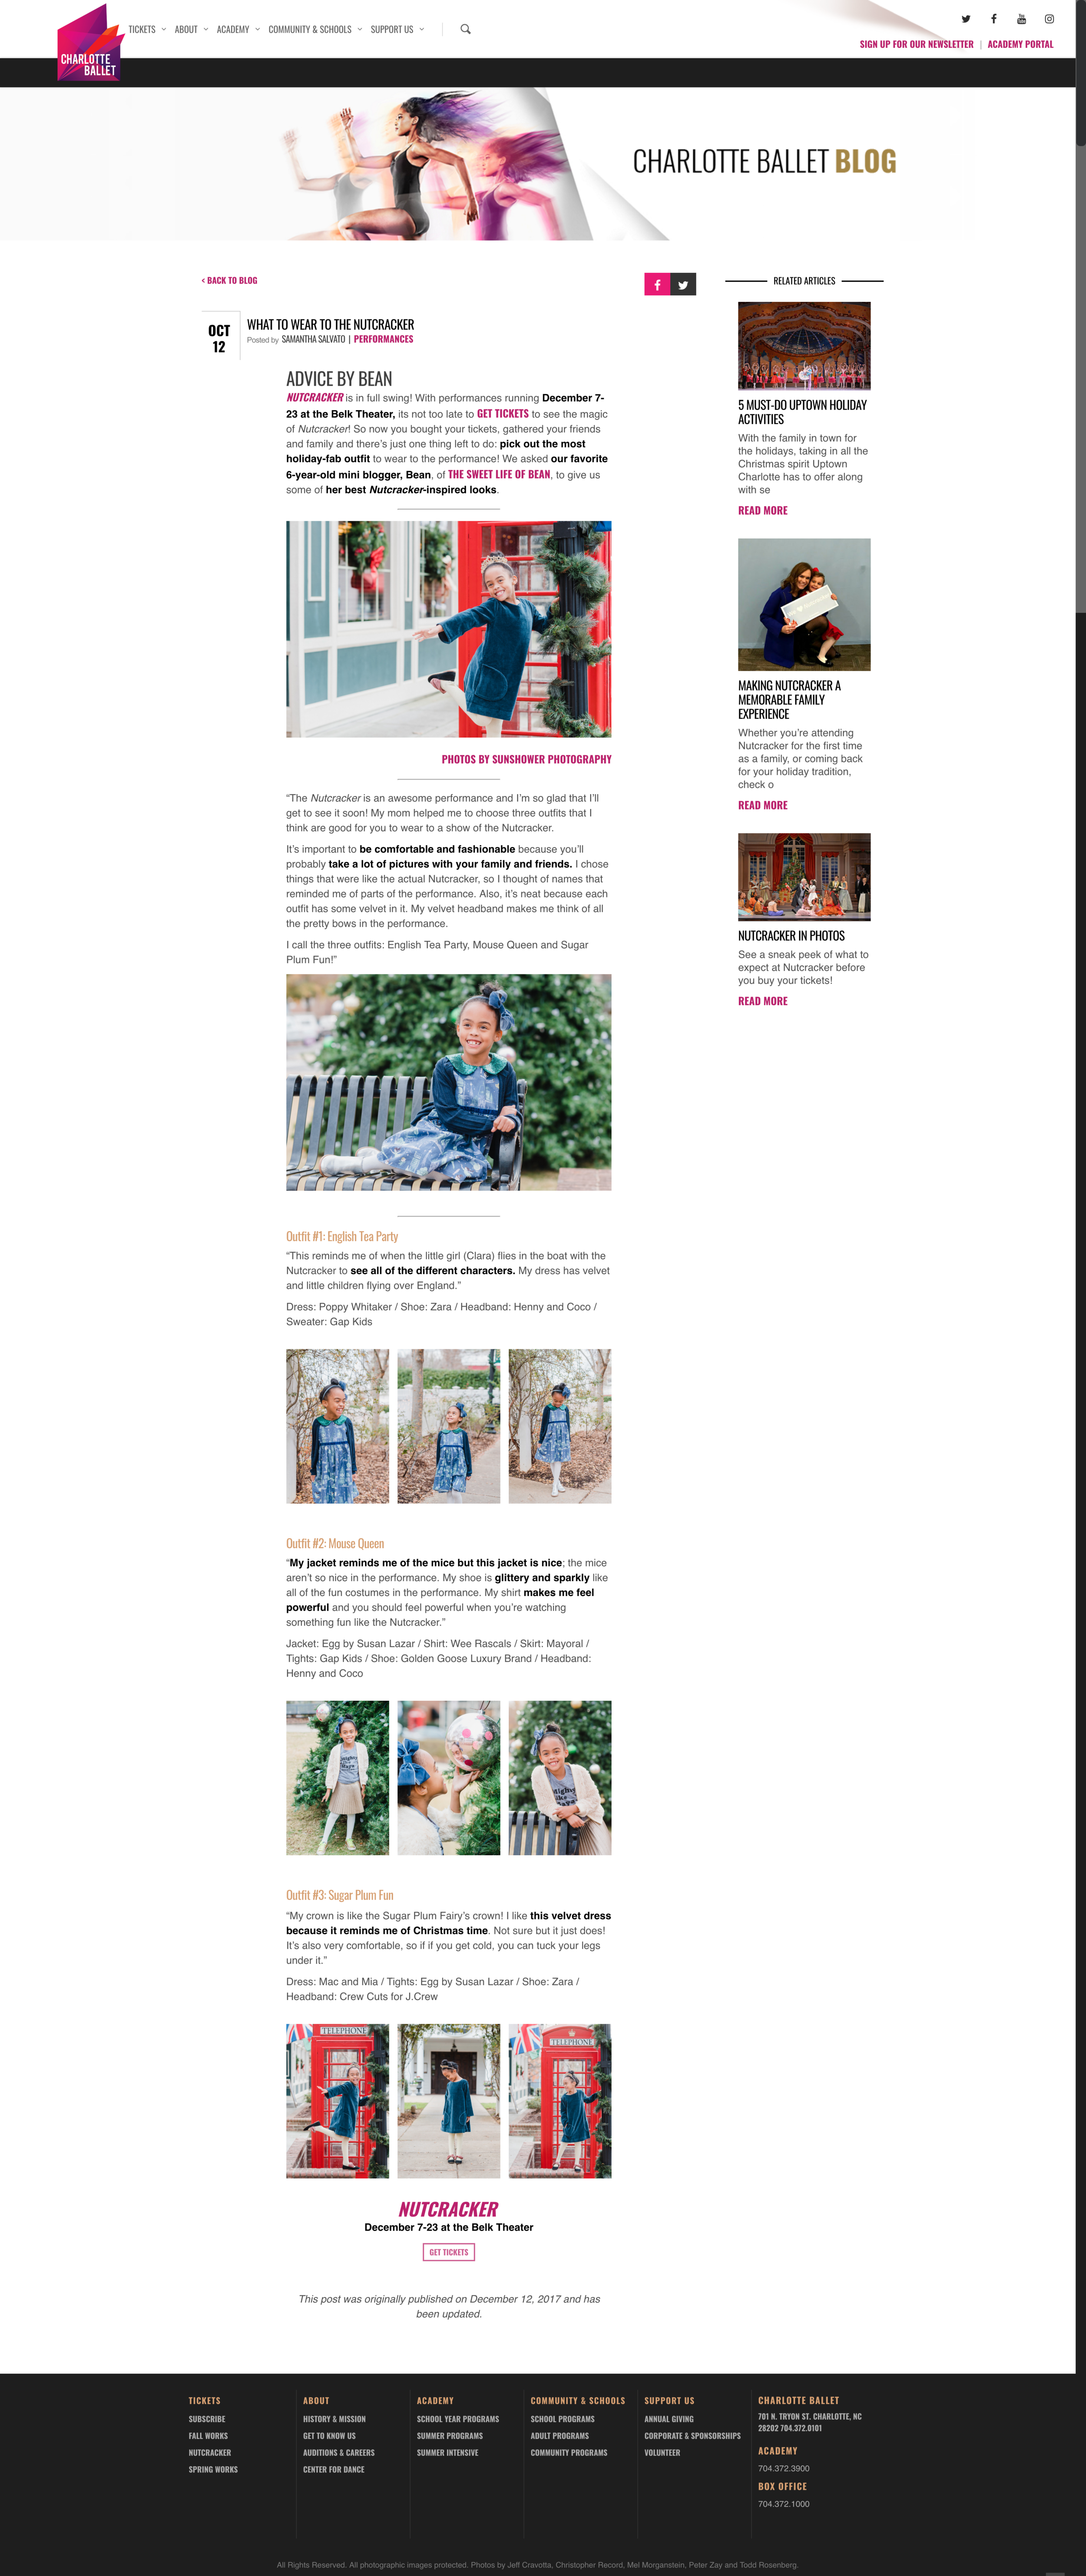 screencapture-charlotteballet-org-what-to-wear-to-the-nutcracker-2019-04-14-12_18_29.png